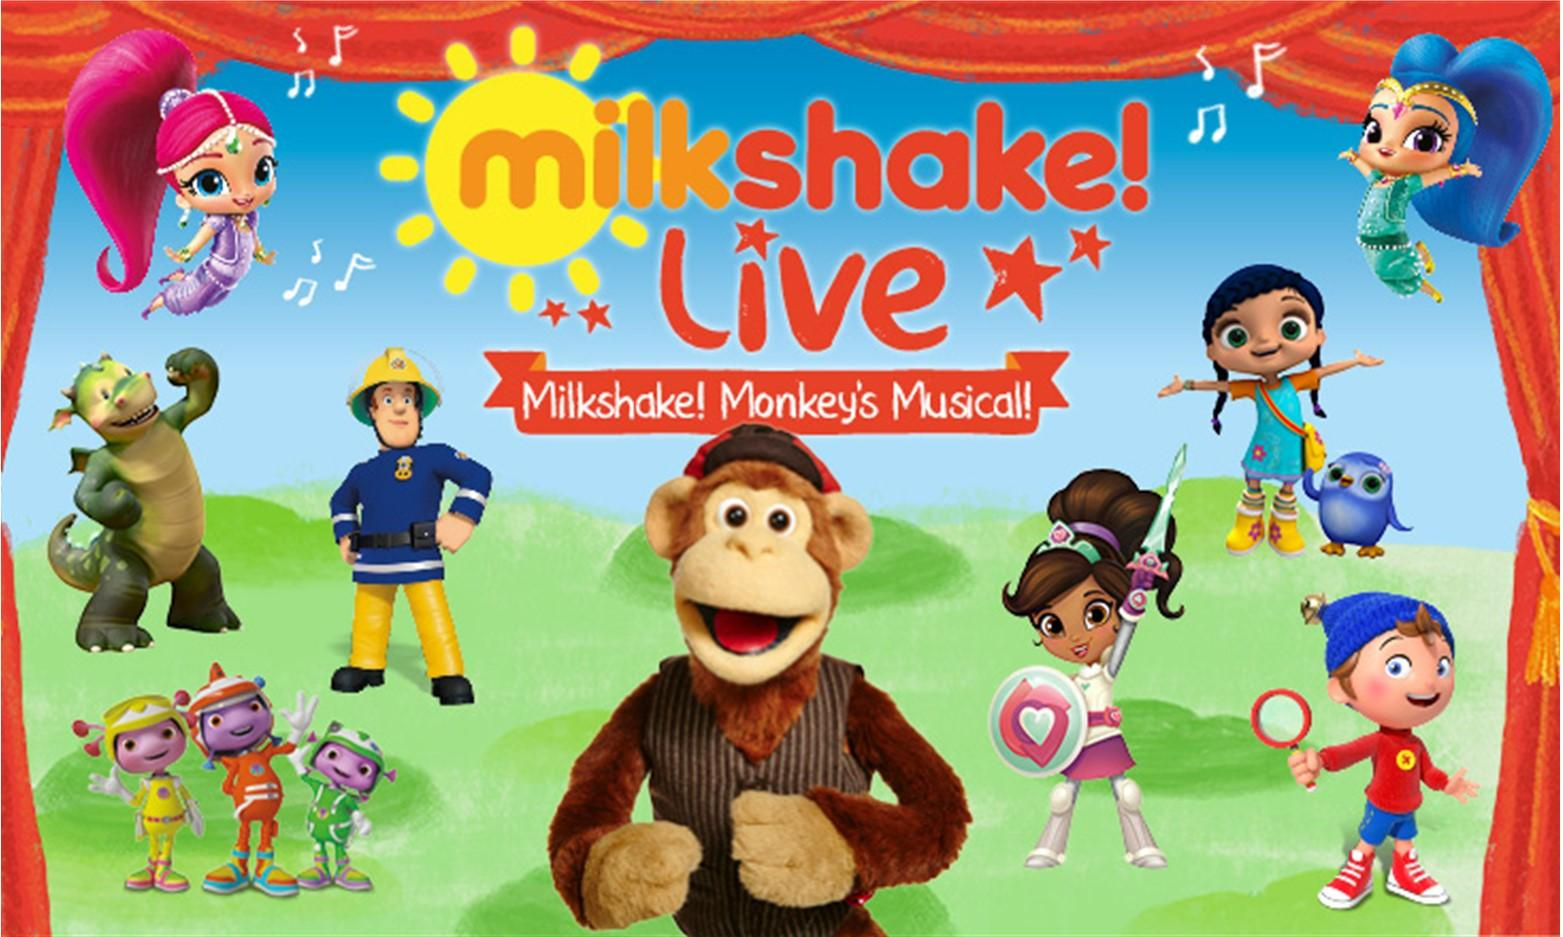 Milkshake Live - Monkey's Musical at Princess Royal Theatre